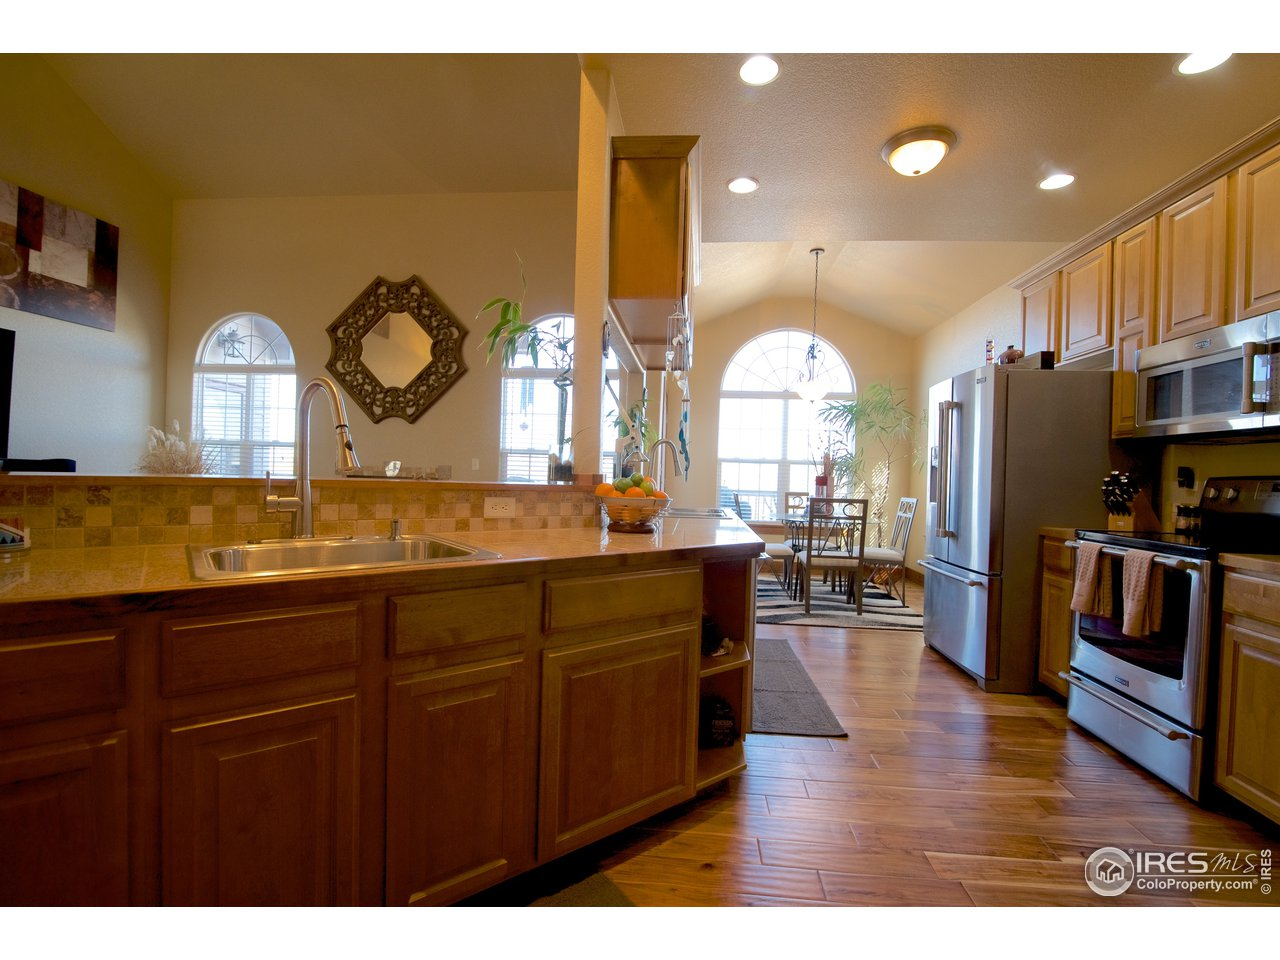 Large kitchen and Nook